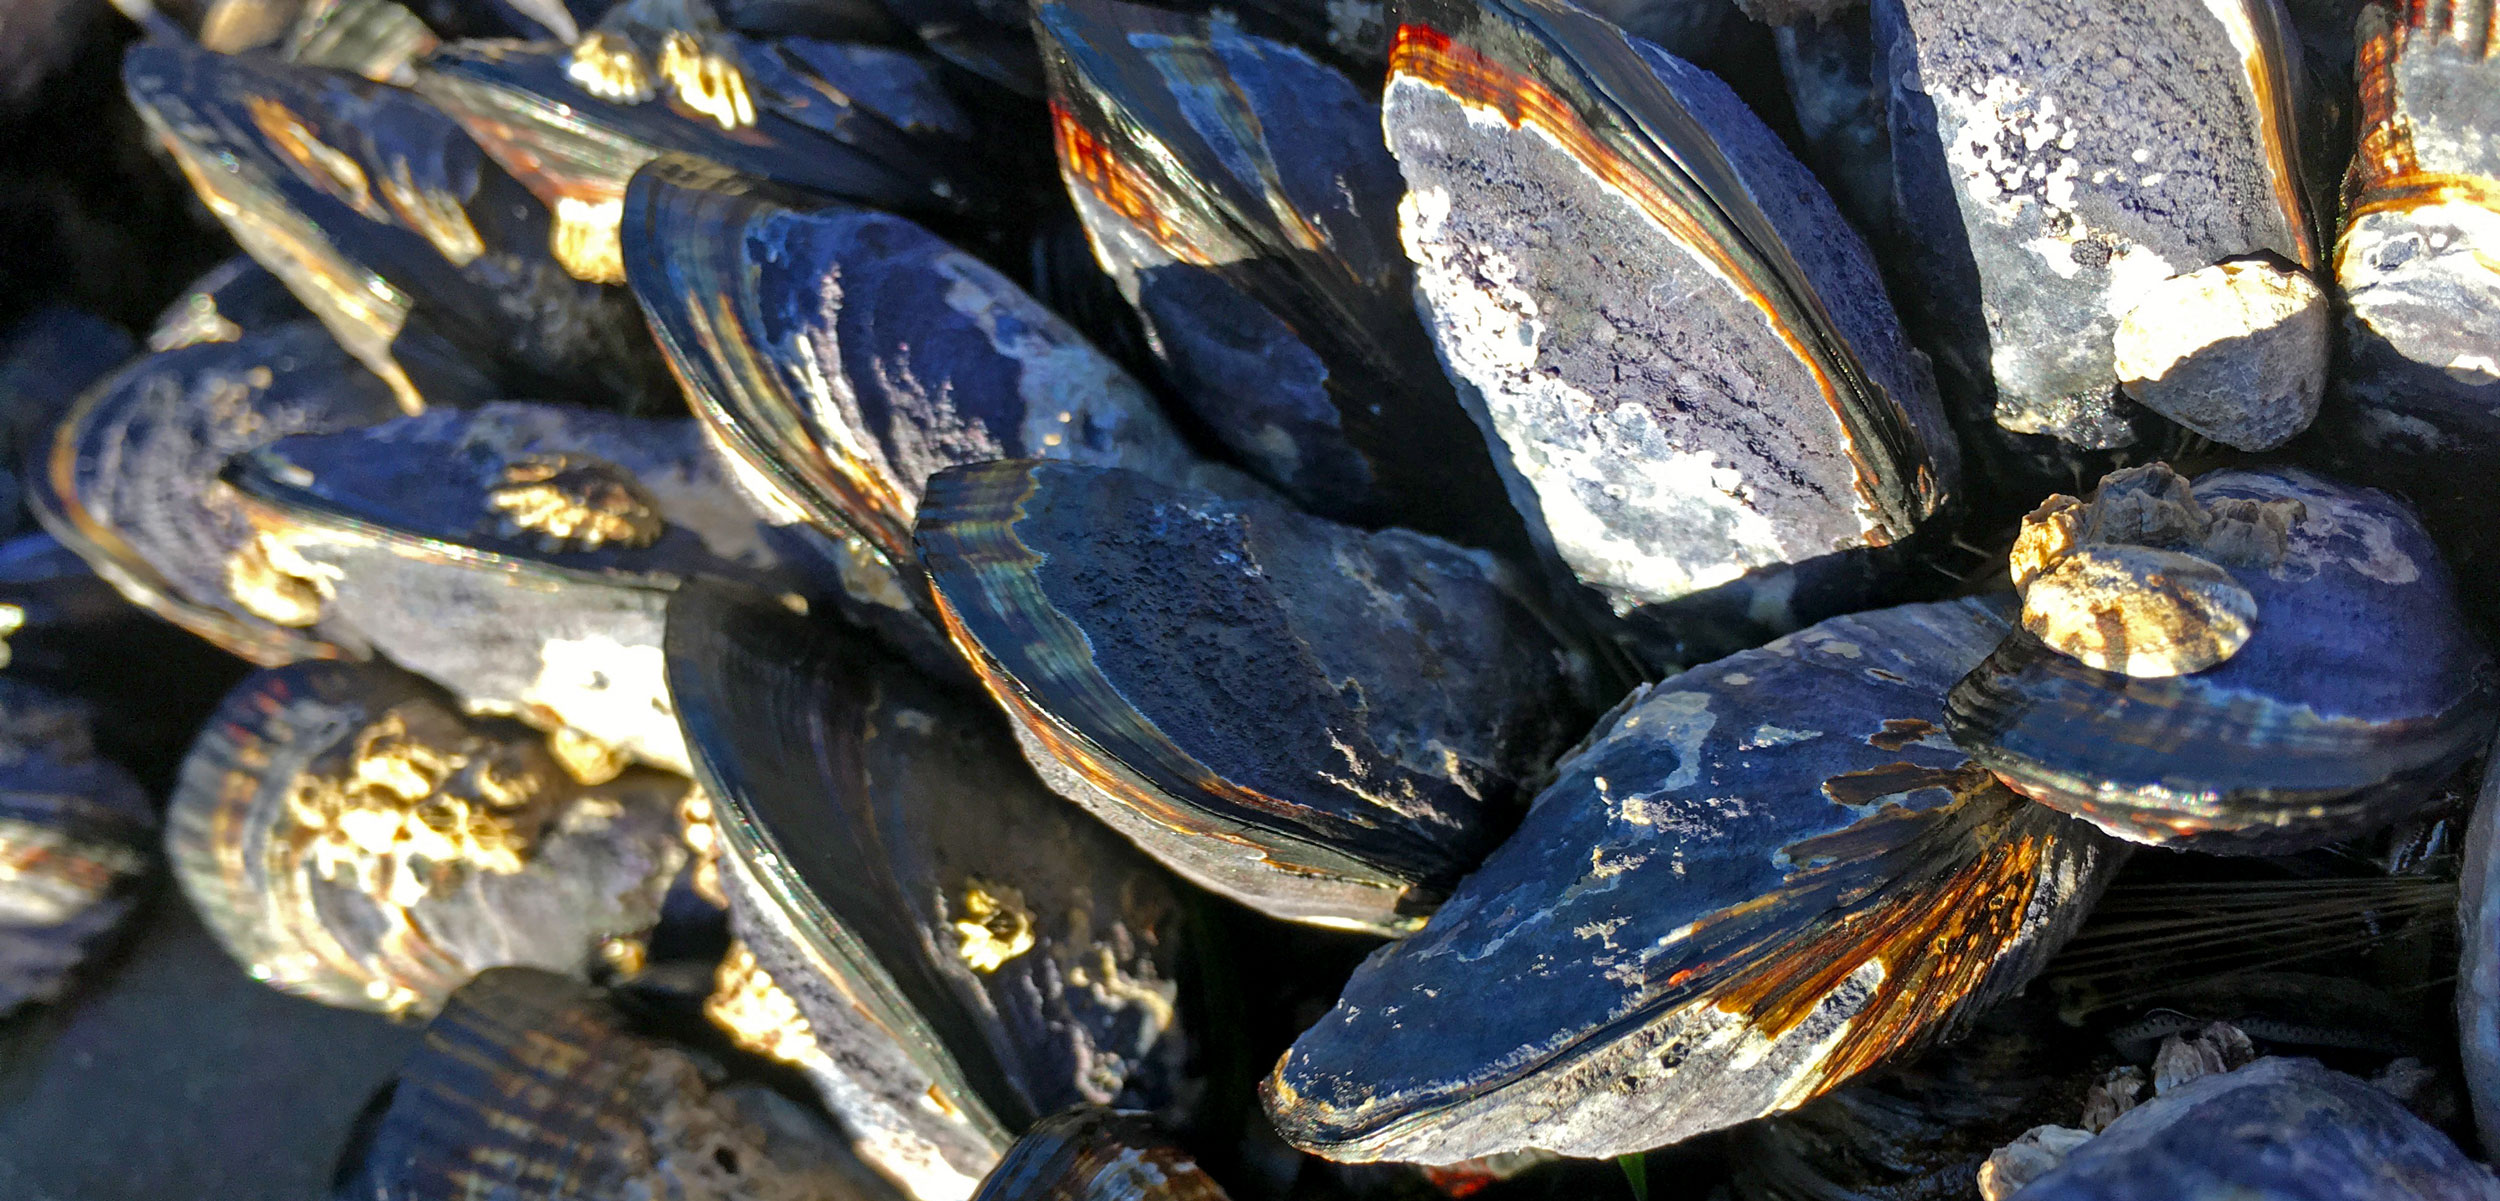 mussels affected by endolithic parasites